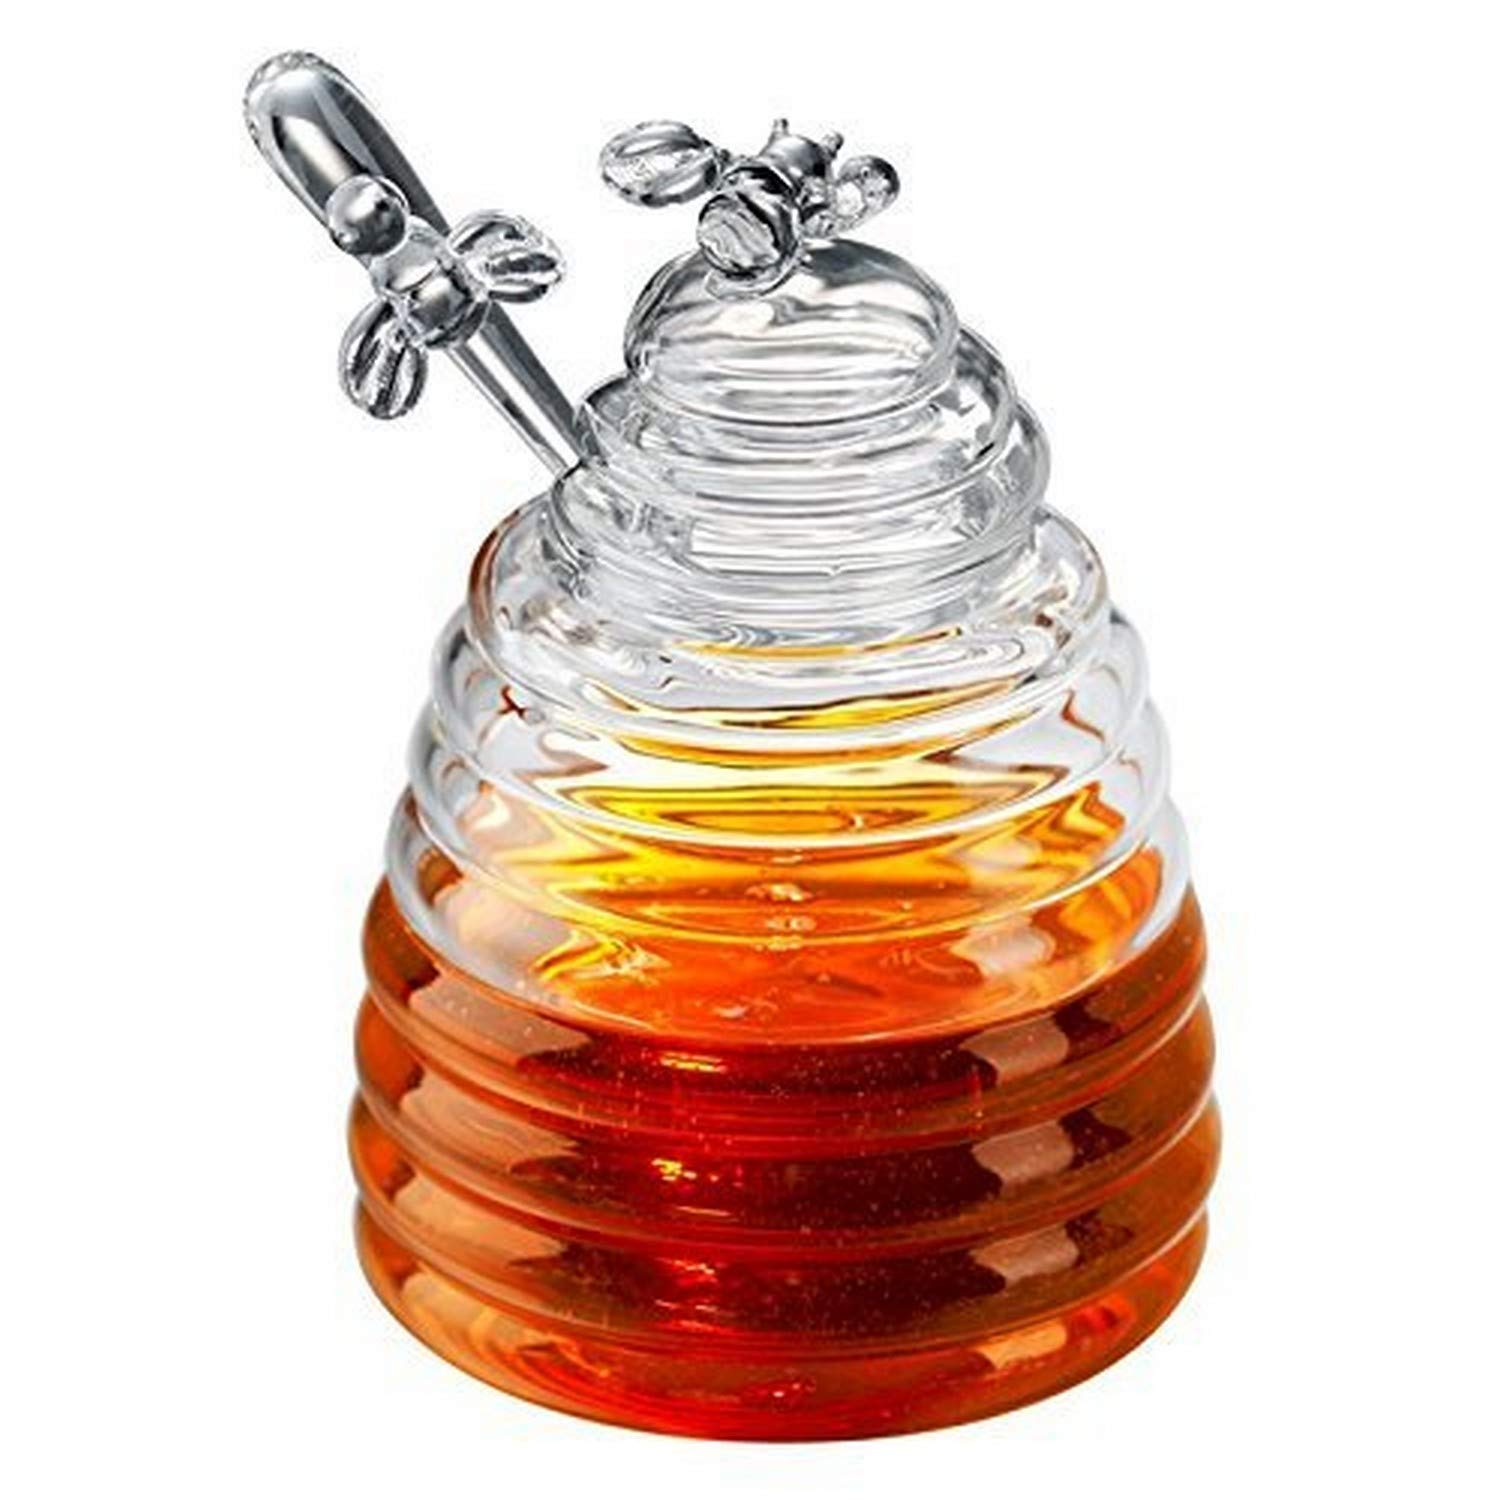 Jar with Dipper 3-piece Set Honey Bee Beehive Pot 4.2 Inch CS 0002 by Mary Lake Thompson